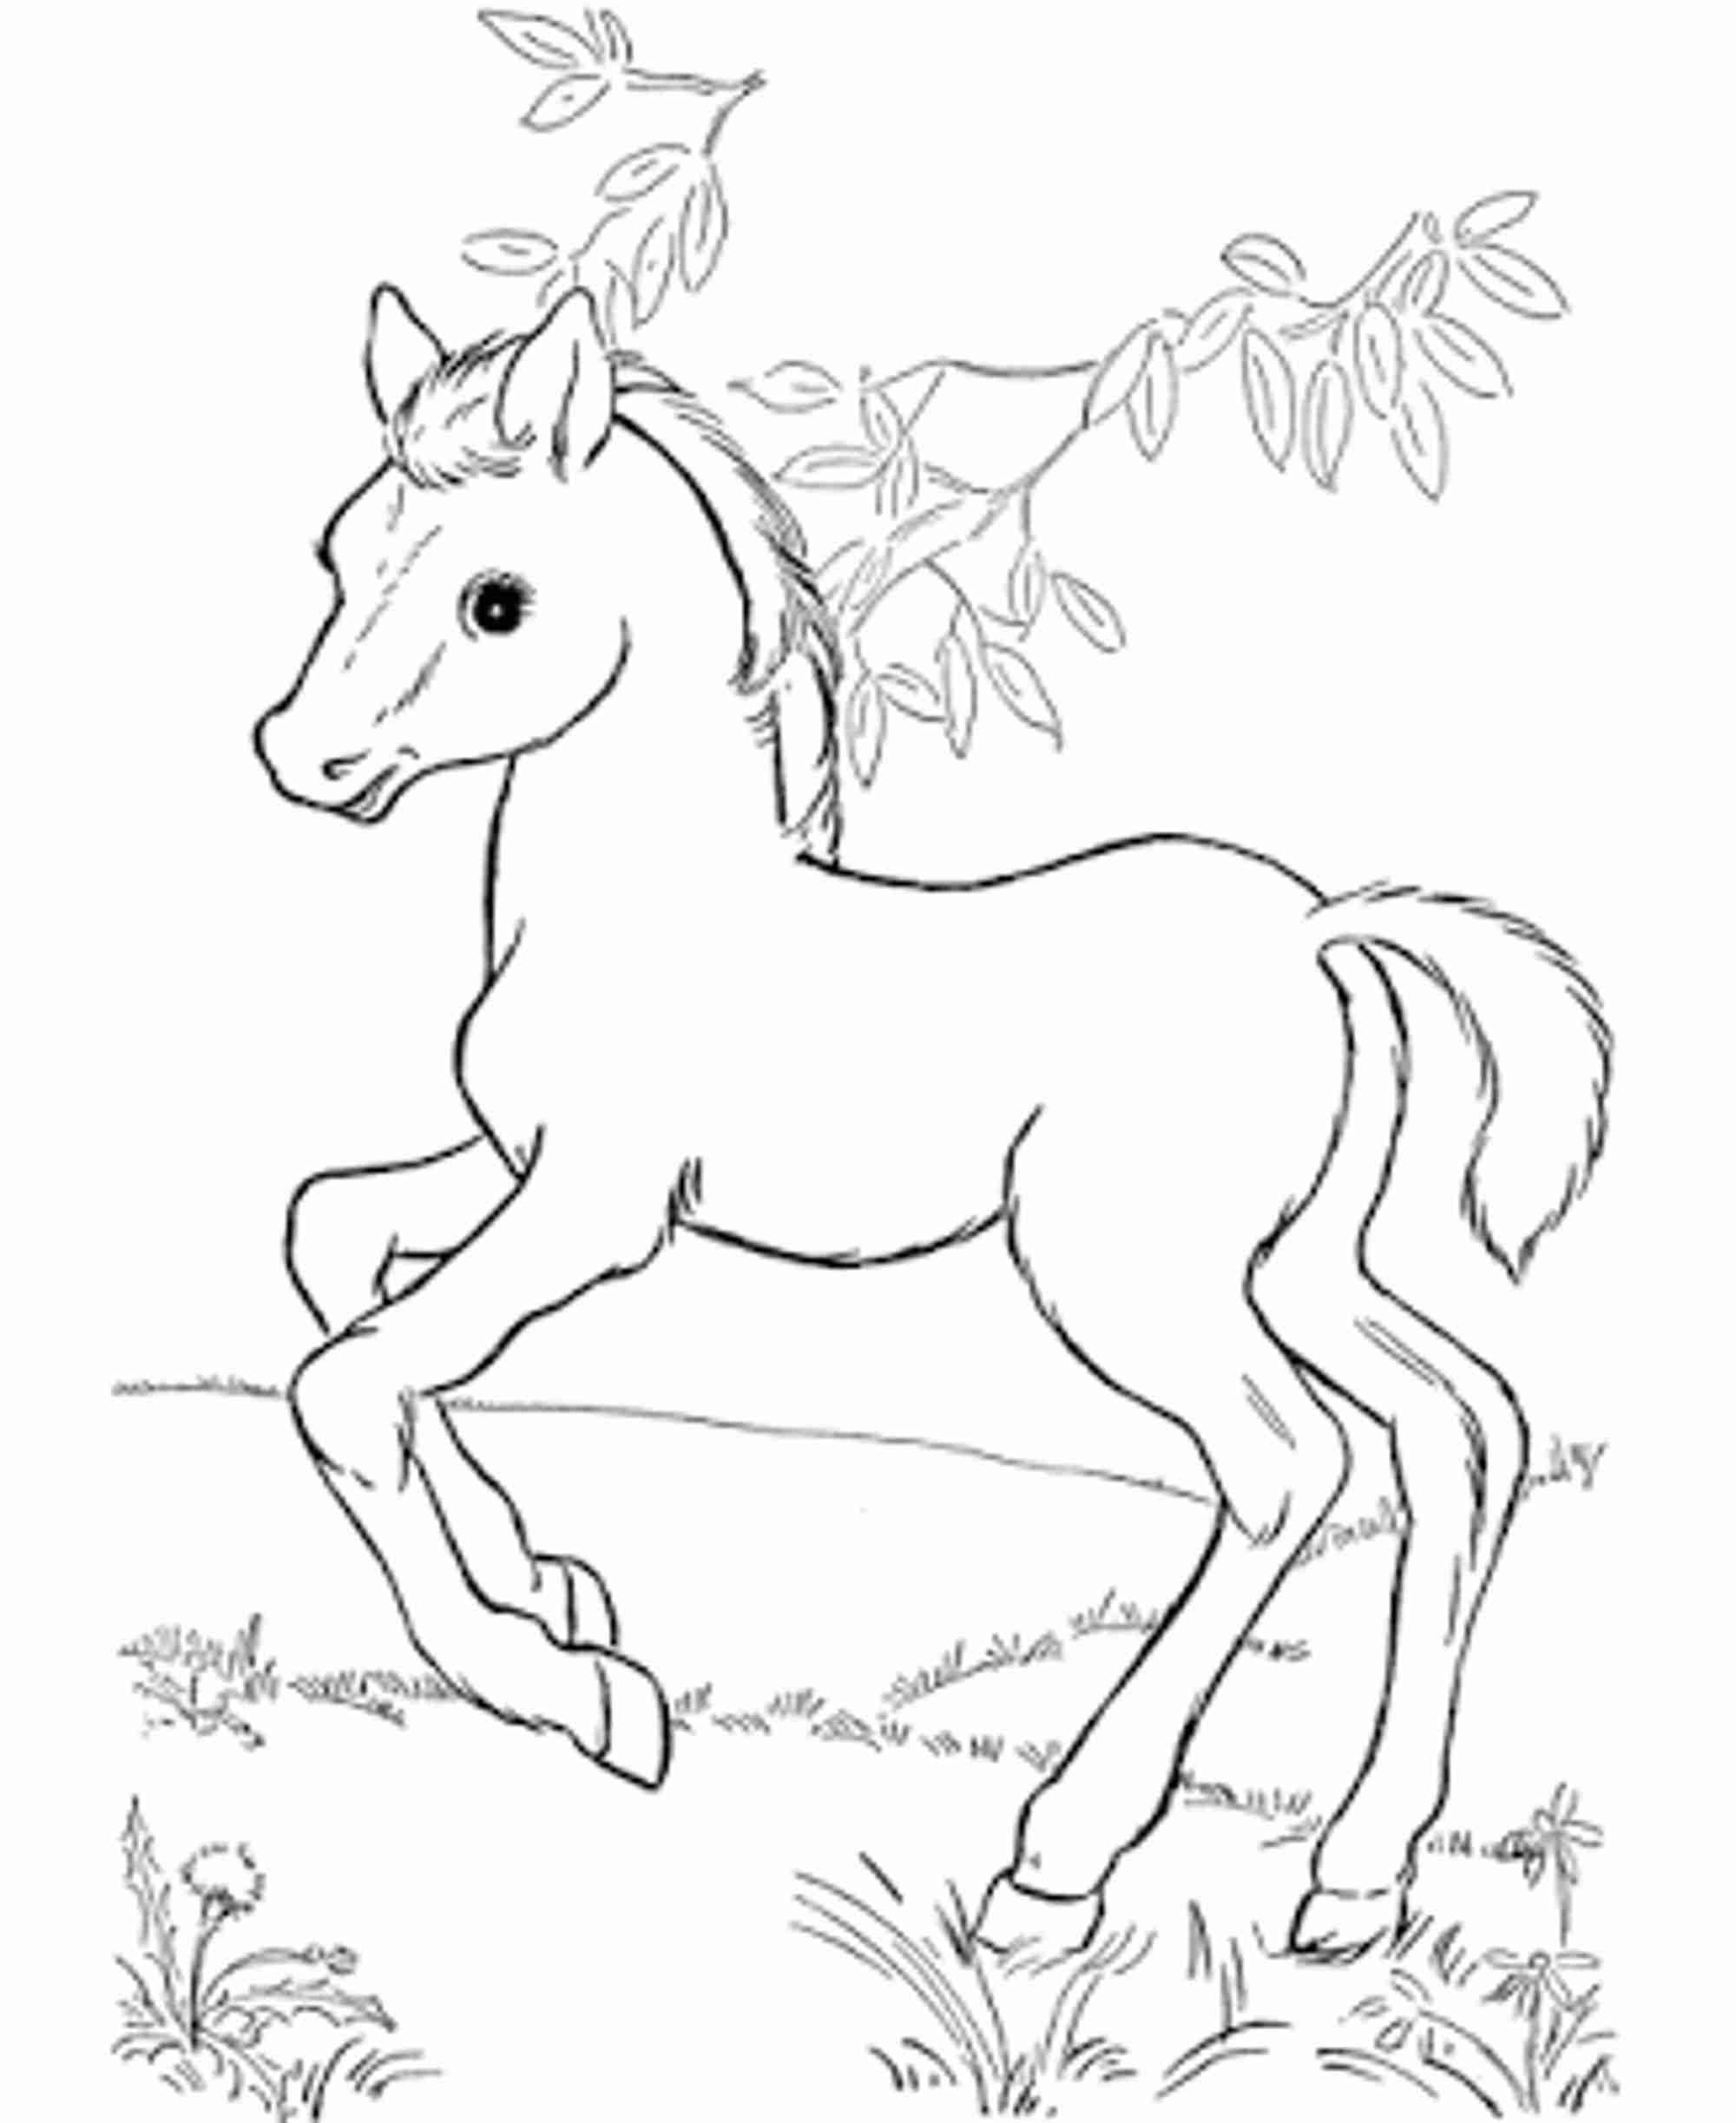 horse coloring pages free horse coloring pages for kids coloring pages for kids horse pages free coloring